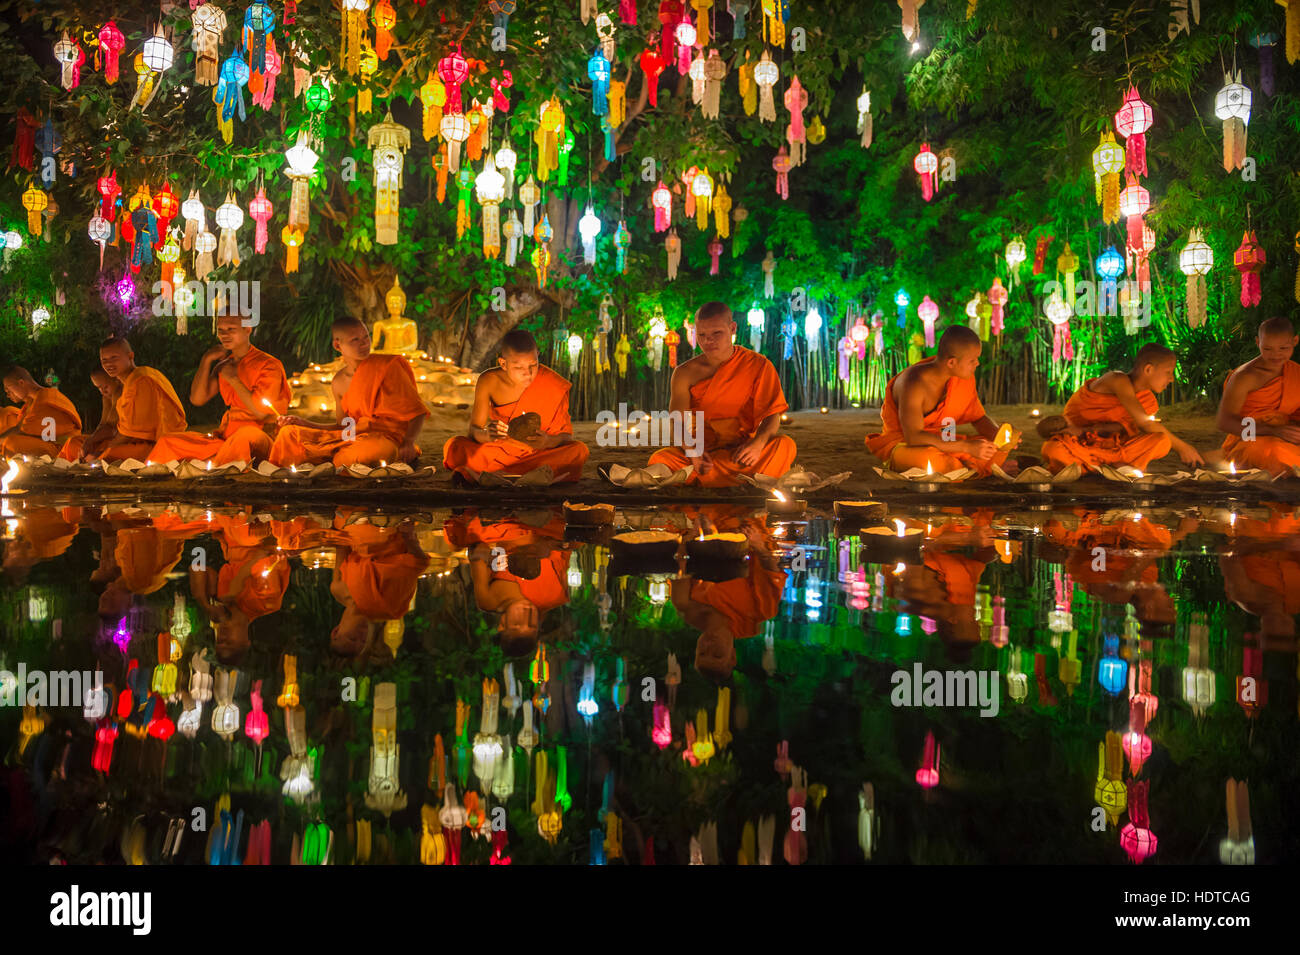 CHIANG MAI, THAILAND - NOVEMBER 06, 2014: Young Buddhist monks sit meditating at a festival of lights loi krathong - Stock Image